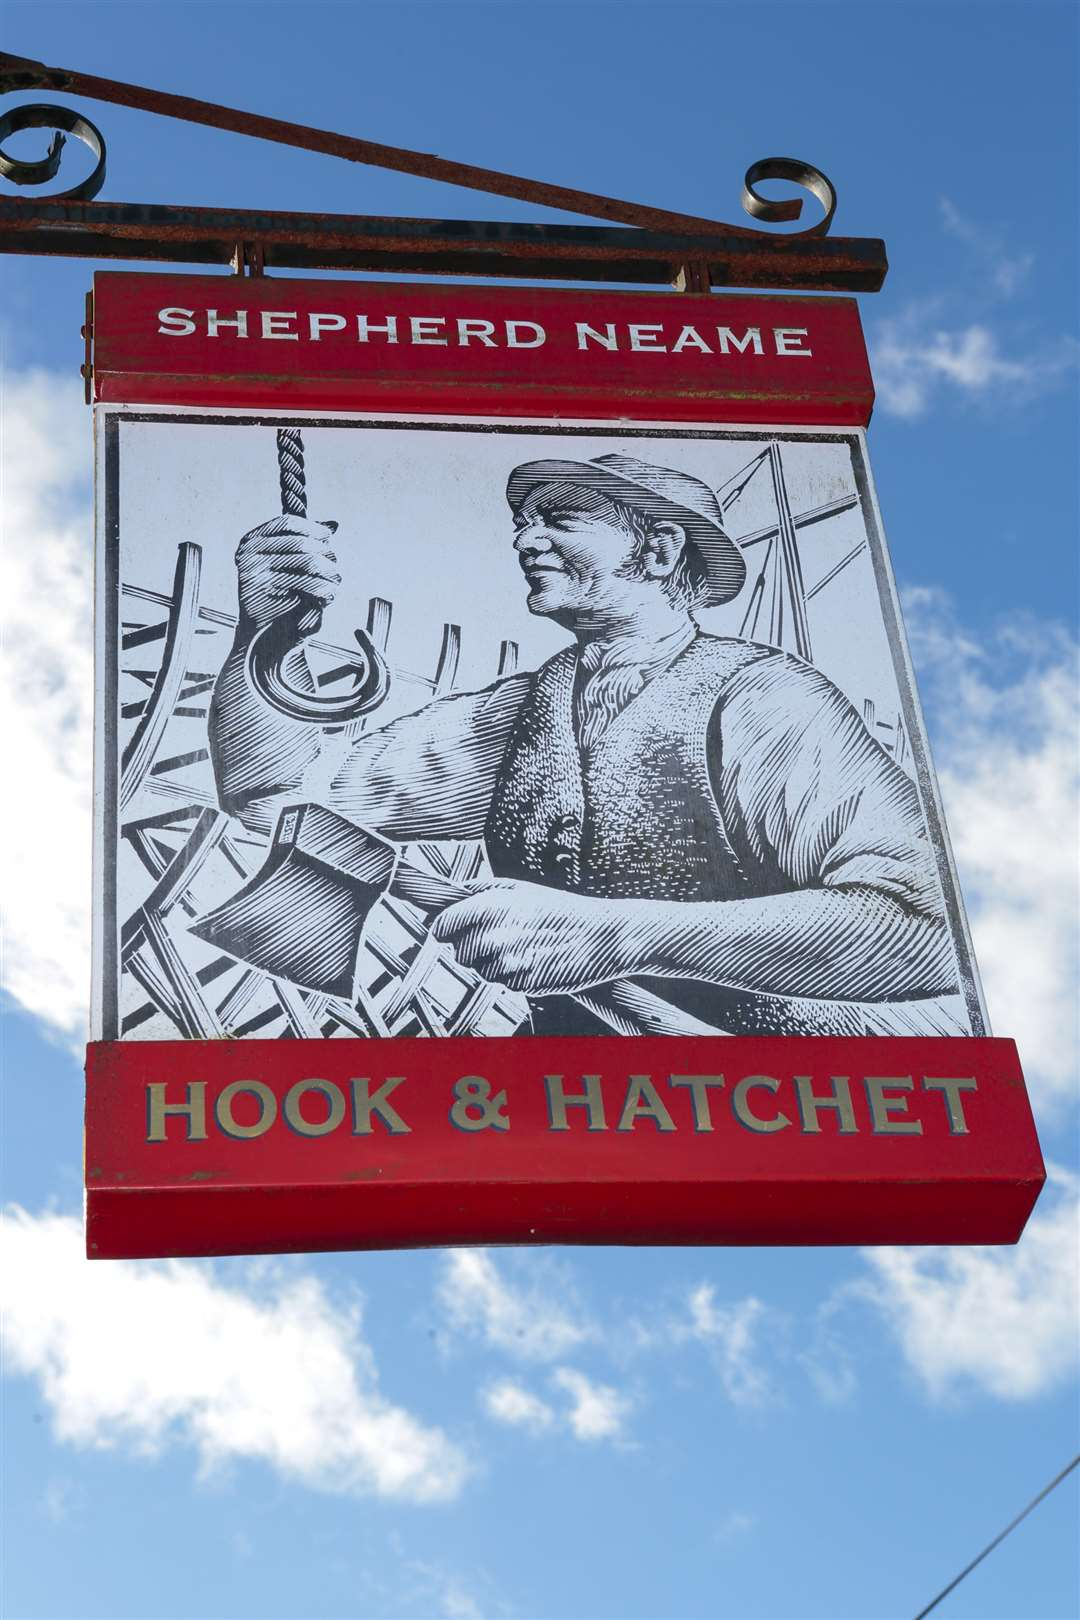 The Hook and Hatchet on Church Road in Hucking